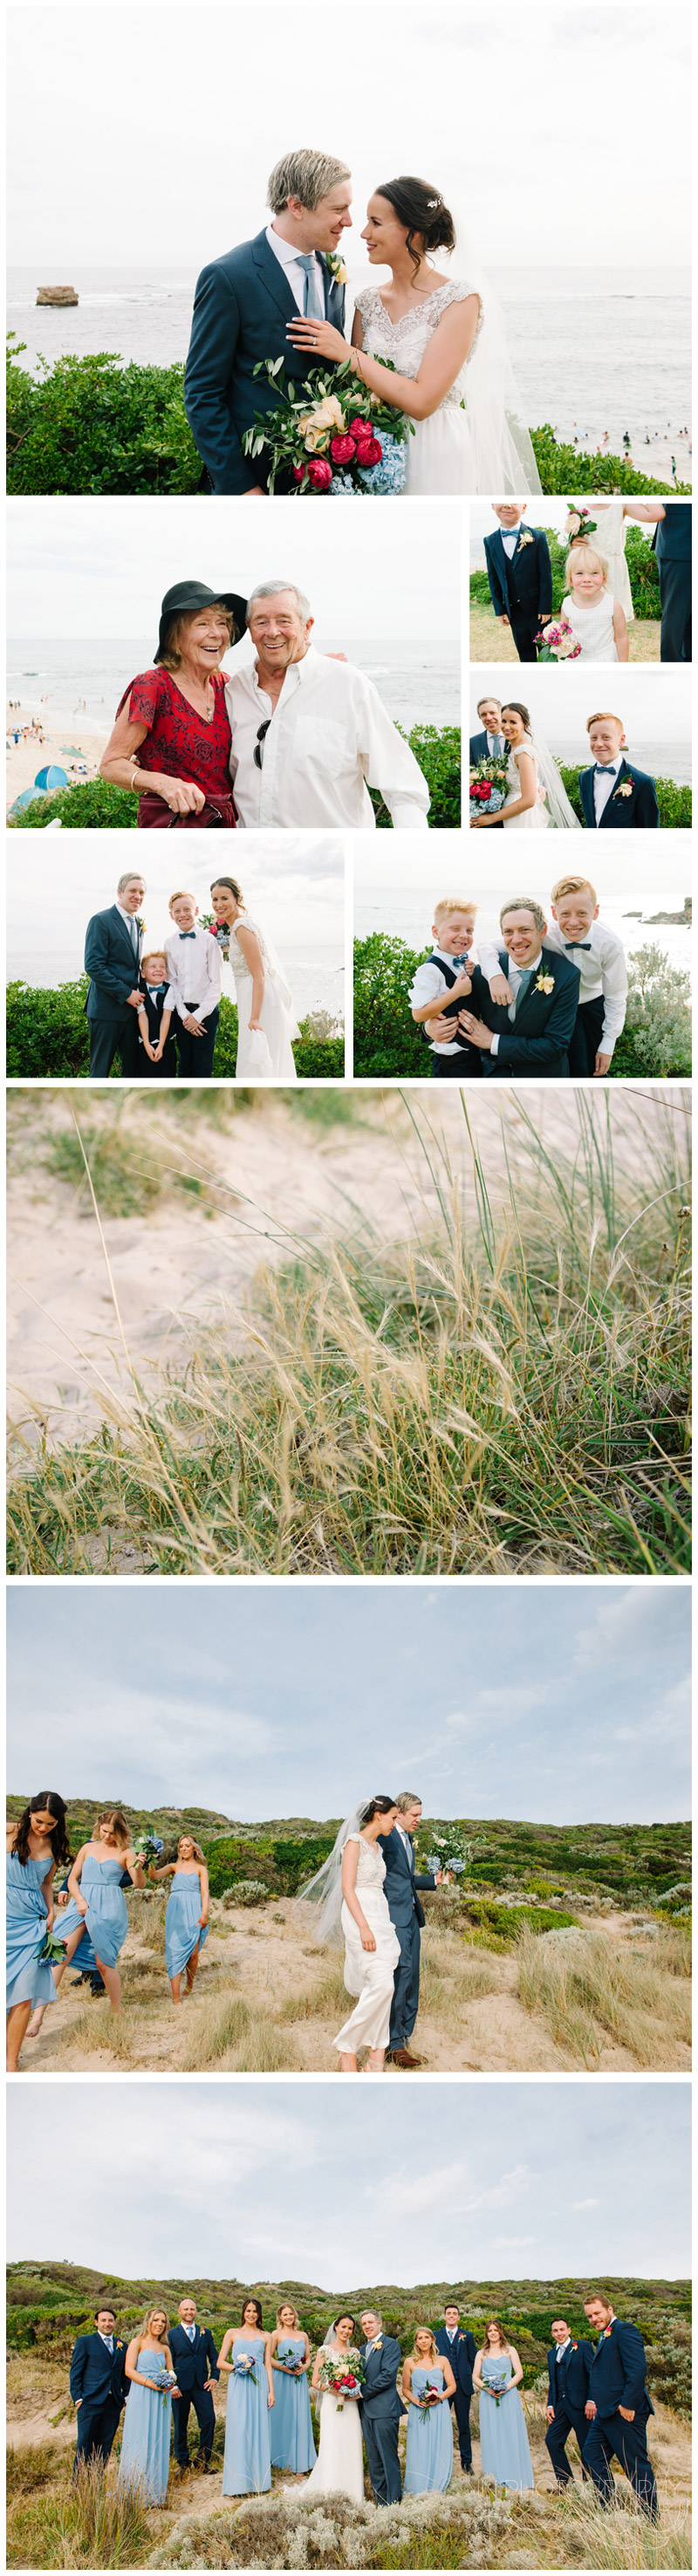 Mornington Peninsula beach wedding by Michelle Pragt